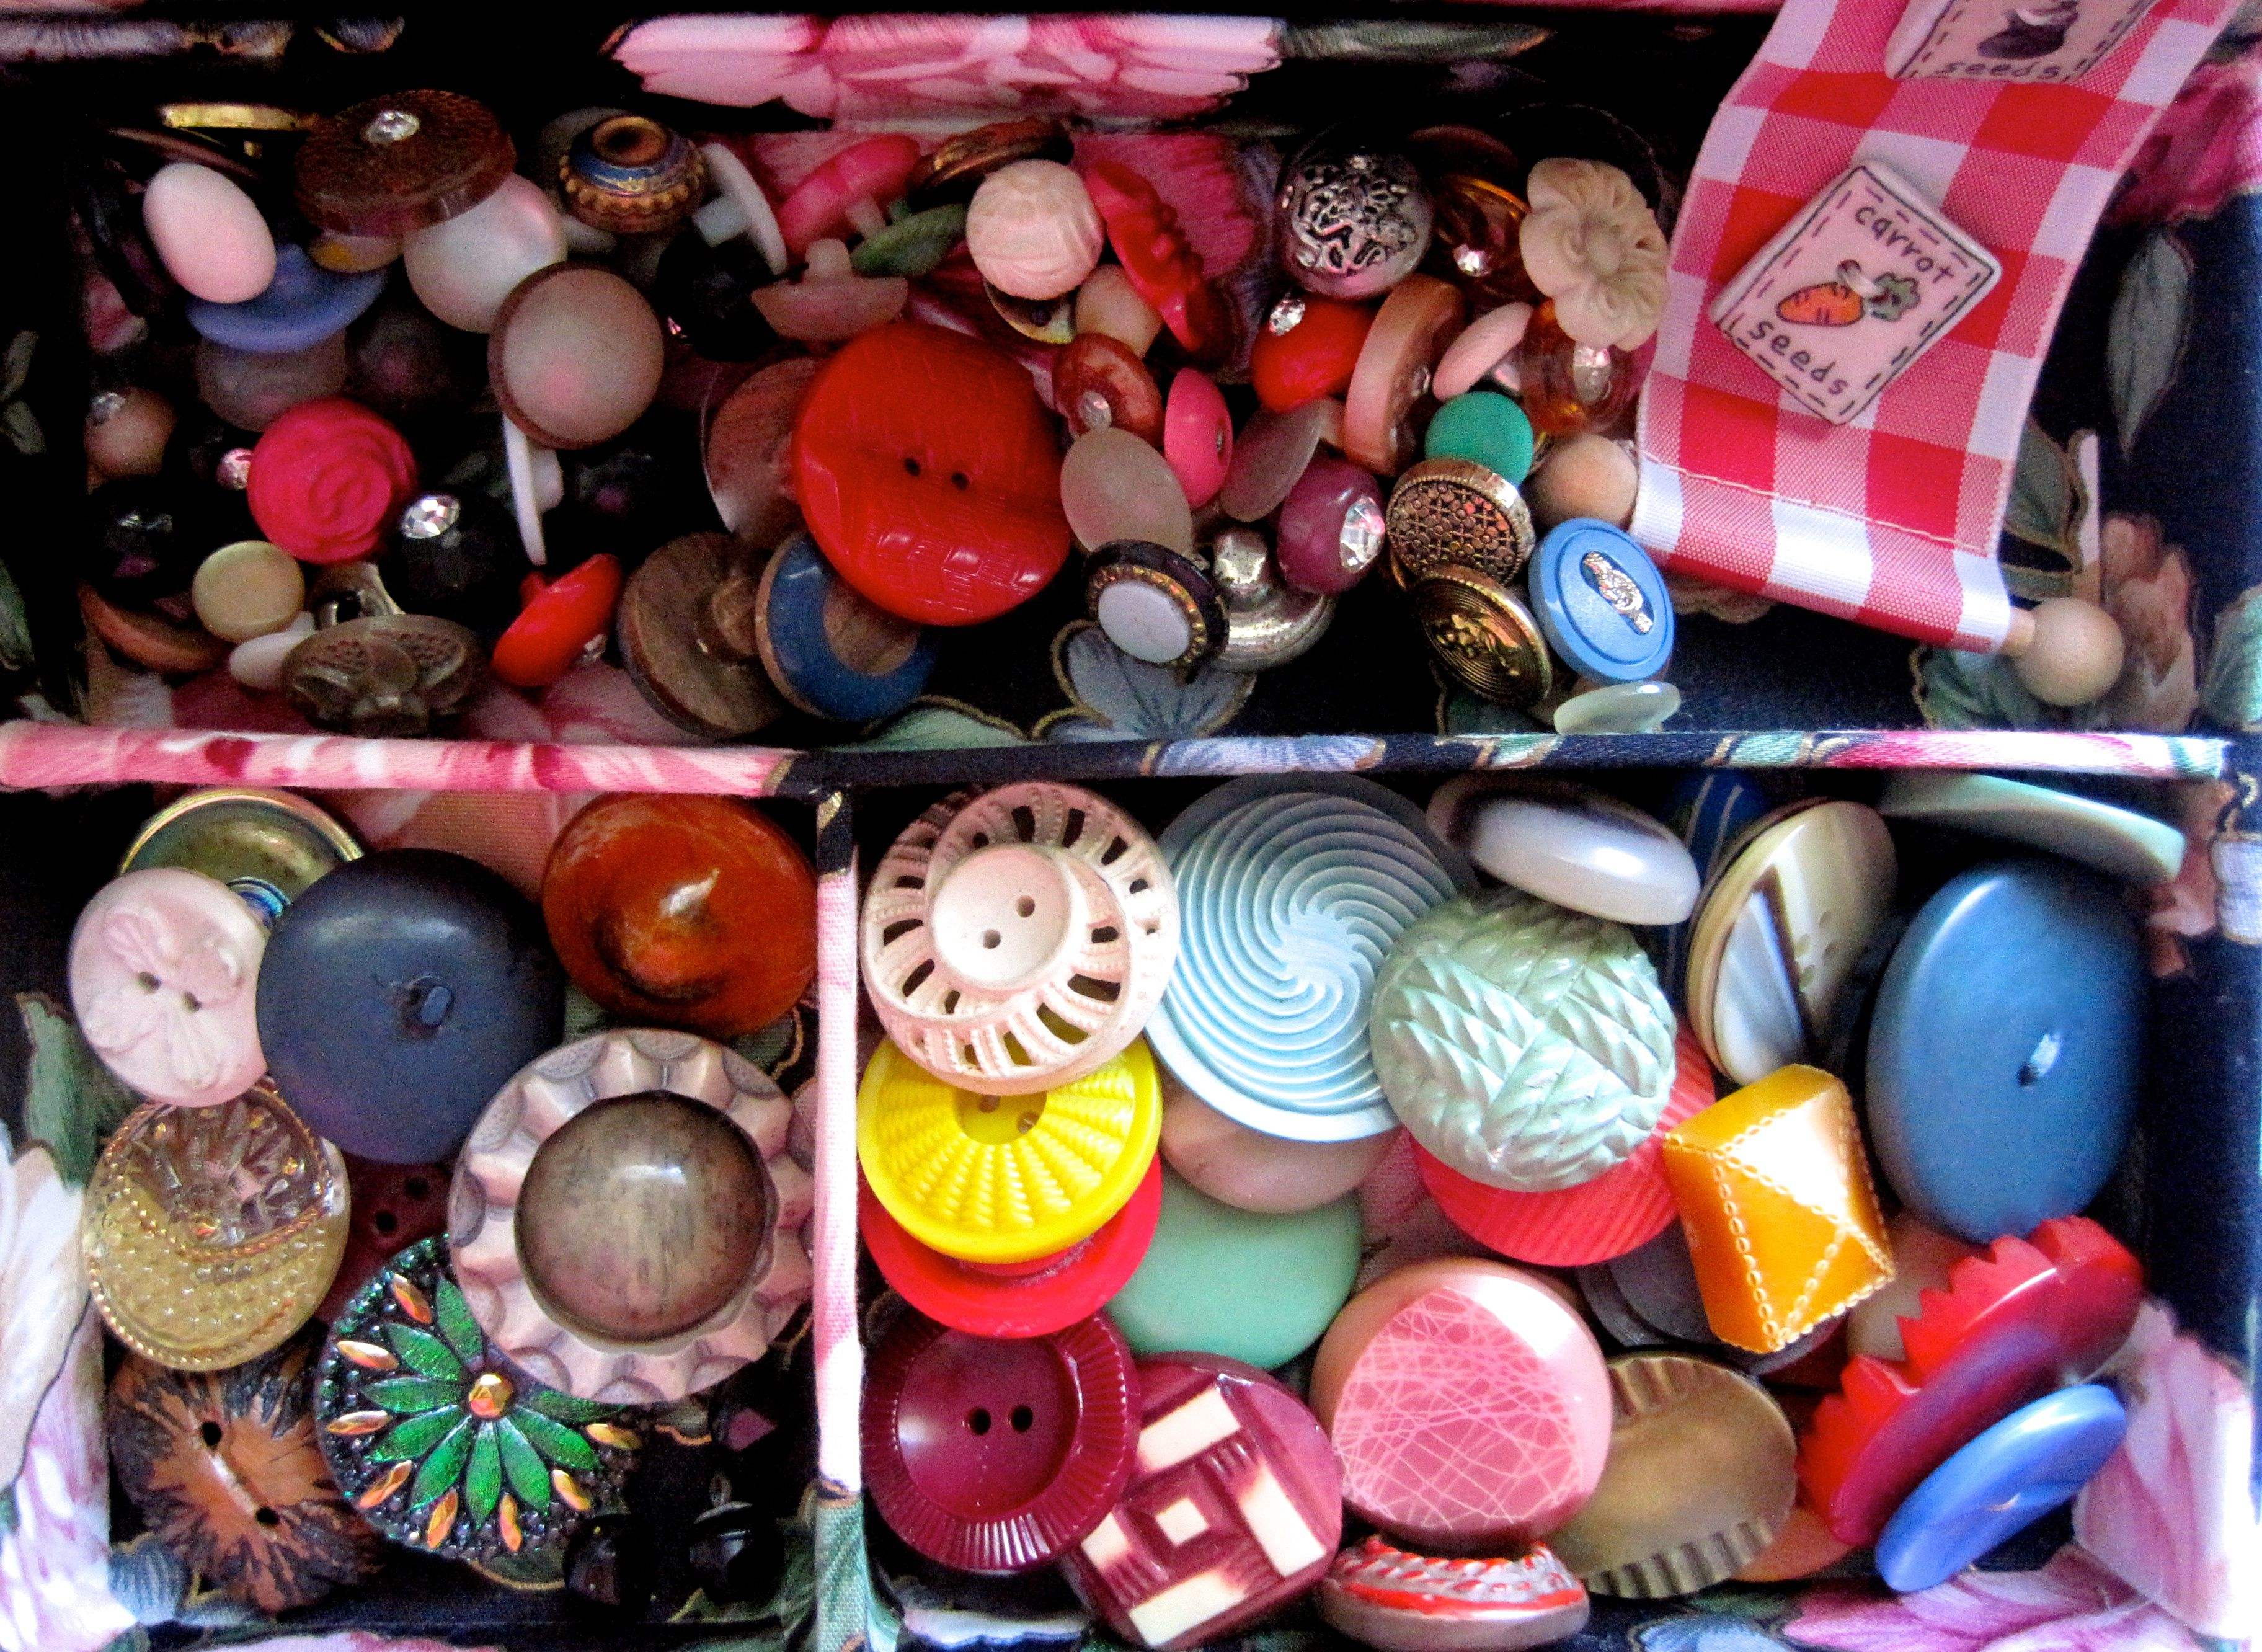 Delicious colors and designs. www.holeybuttons.com